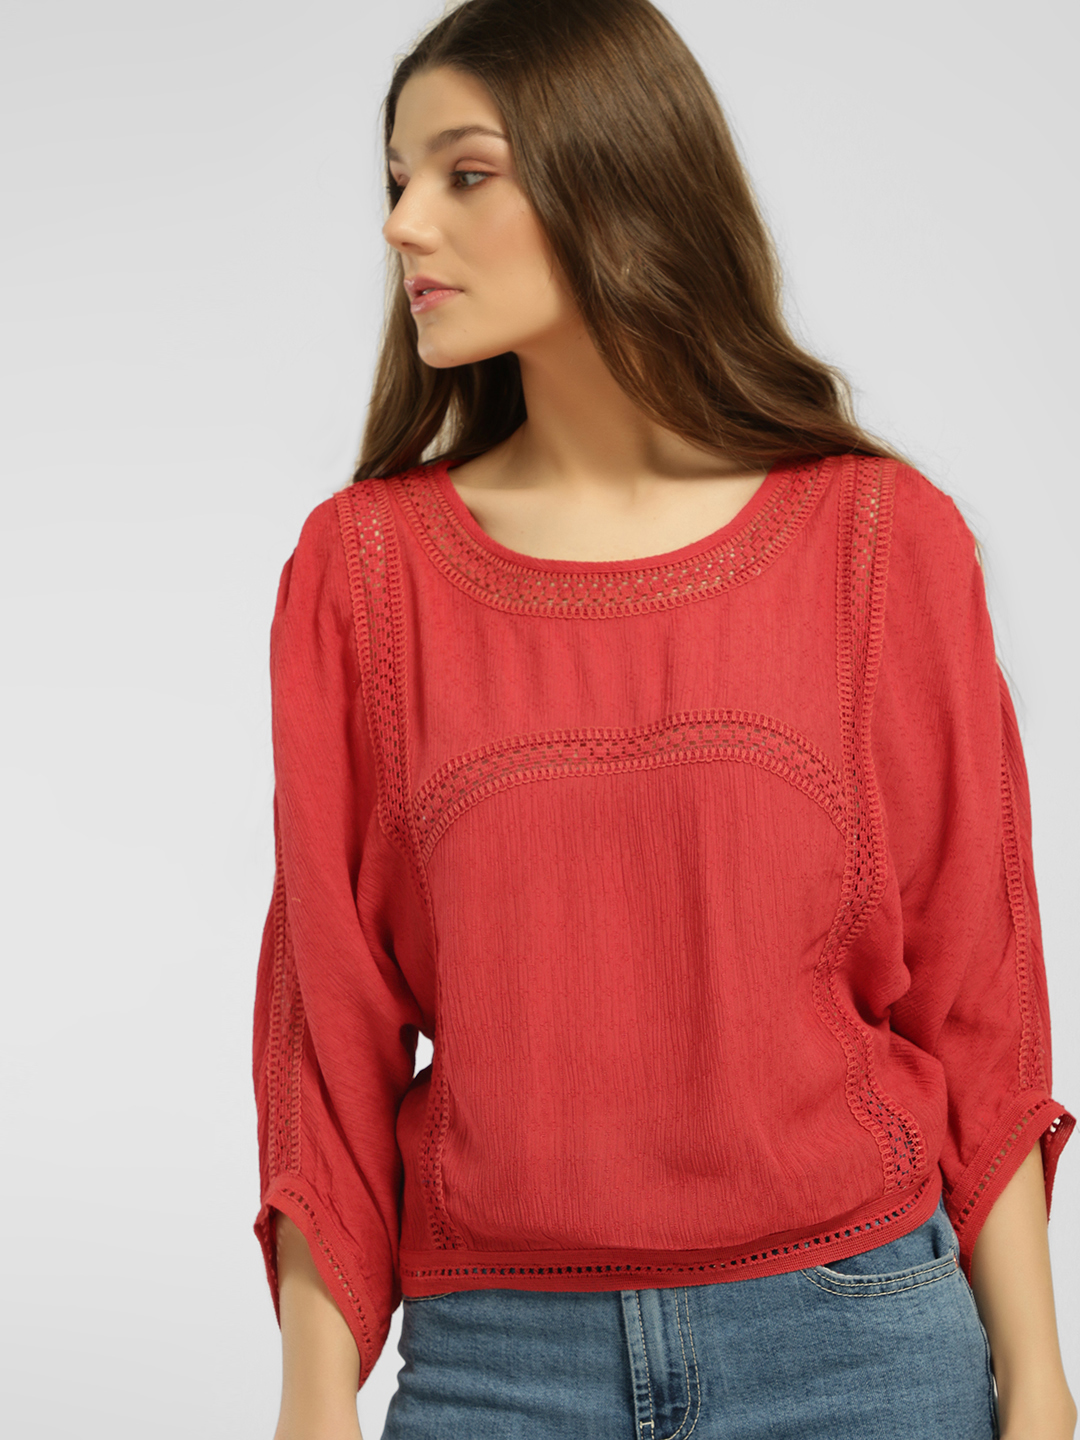 Blue Sequin Red Lace Insert Batwing Sleeve Blouse 1